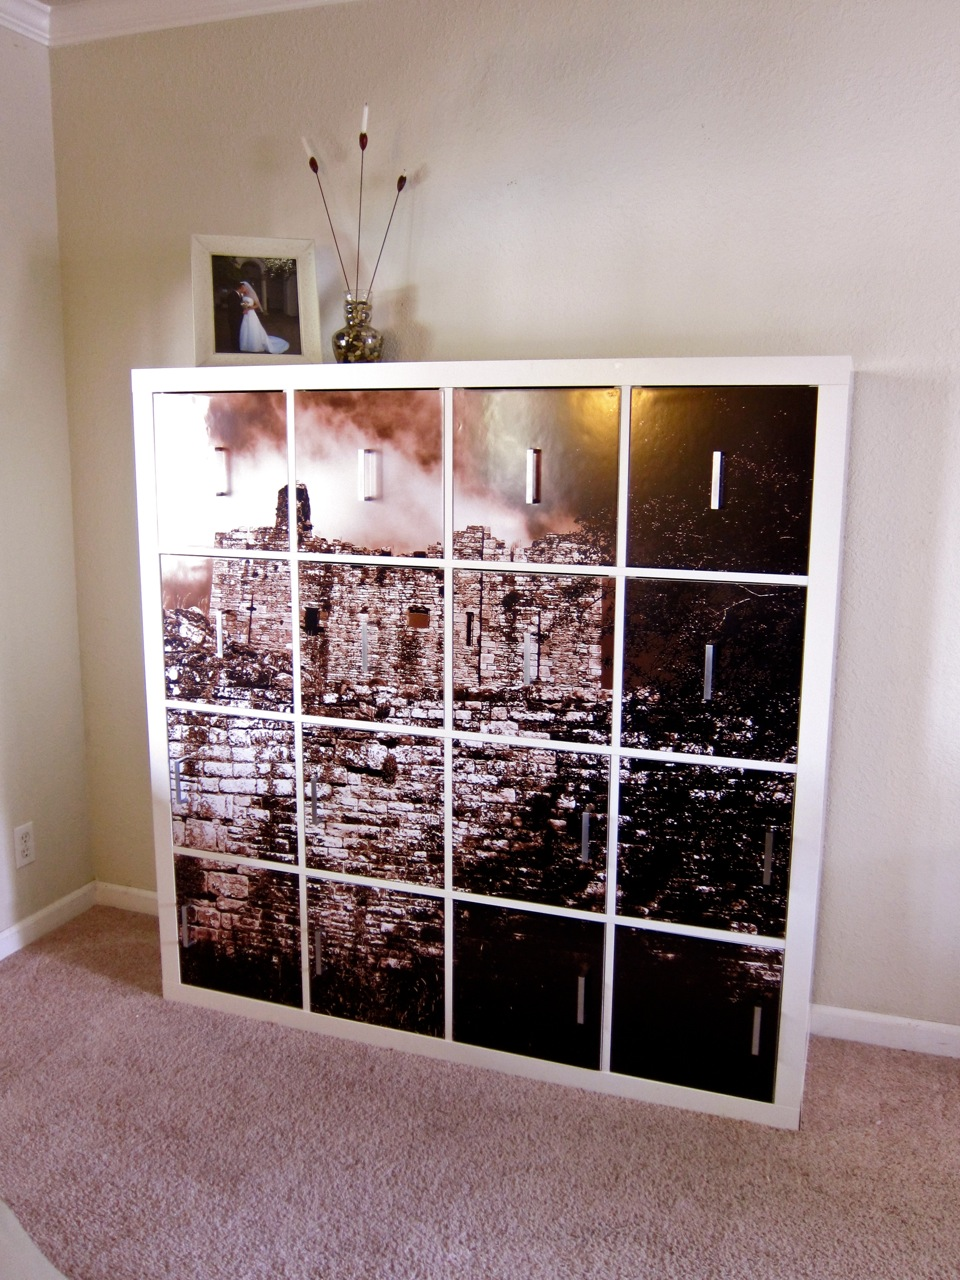 You can make door panels that will turn your Expedit unit into a canvas photo art piece